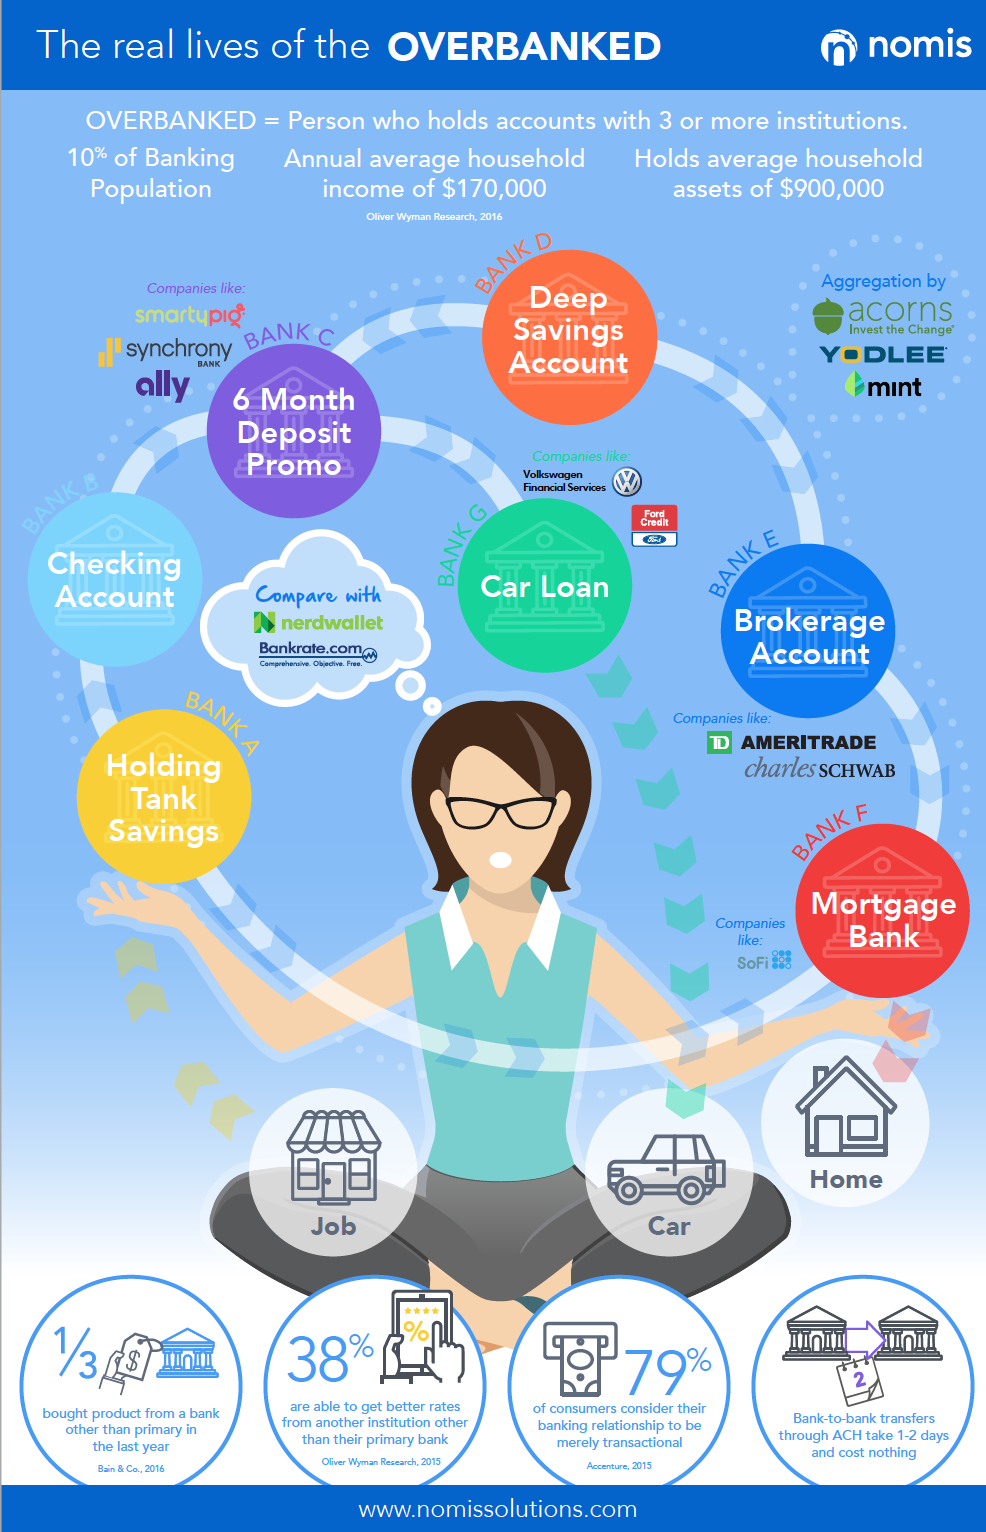 Overbanked Financial Institutions Banks Marketing Infographic